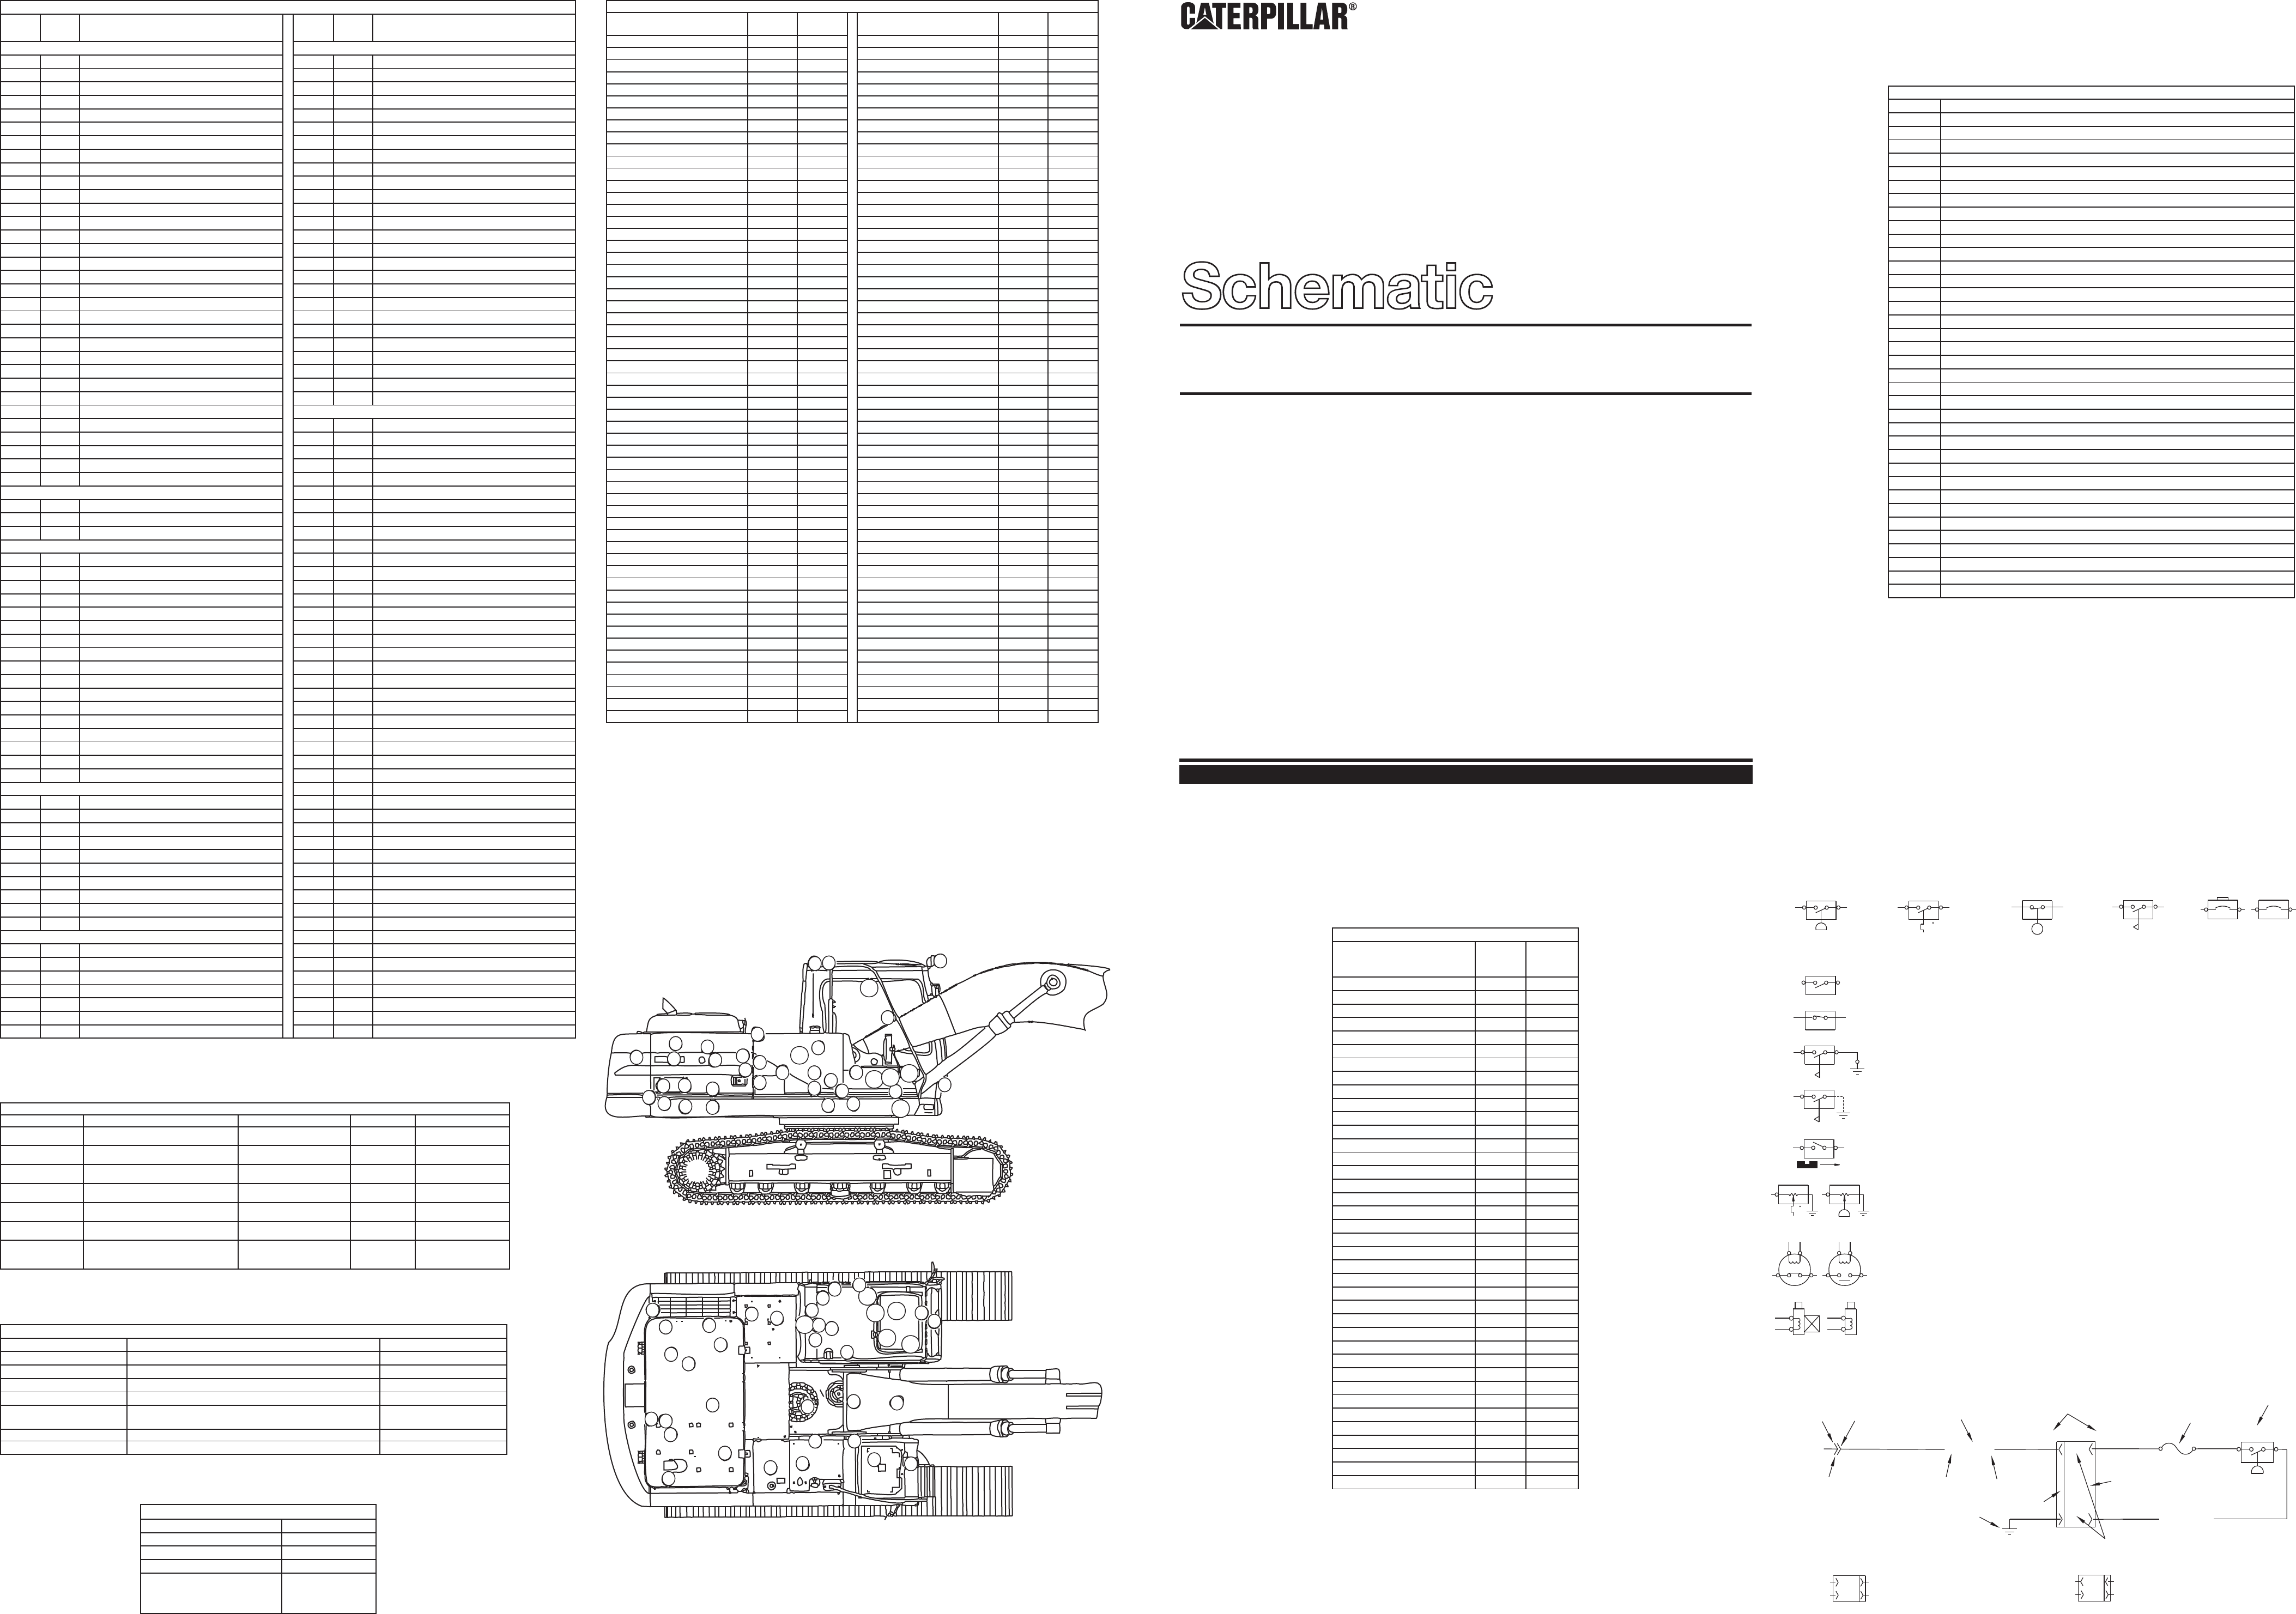 325B EXCAVATOR HE,MM VERSION ELECTRICAL SCHEMATIC, USED IN SERVICE MANUAL  SENR1620   CAT Machines Electrical SchematicCAT Machines Electrical Schematic